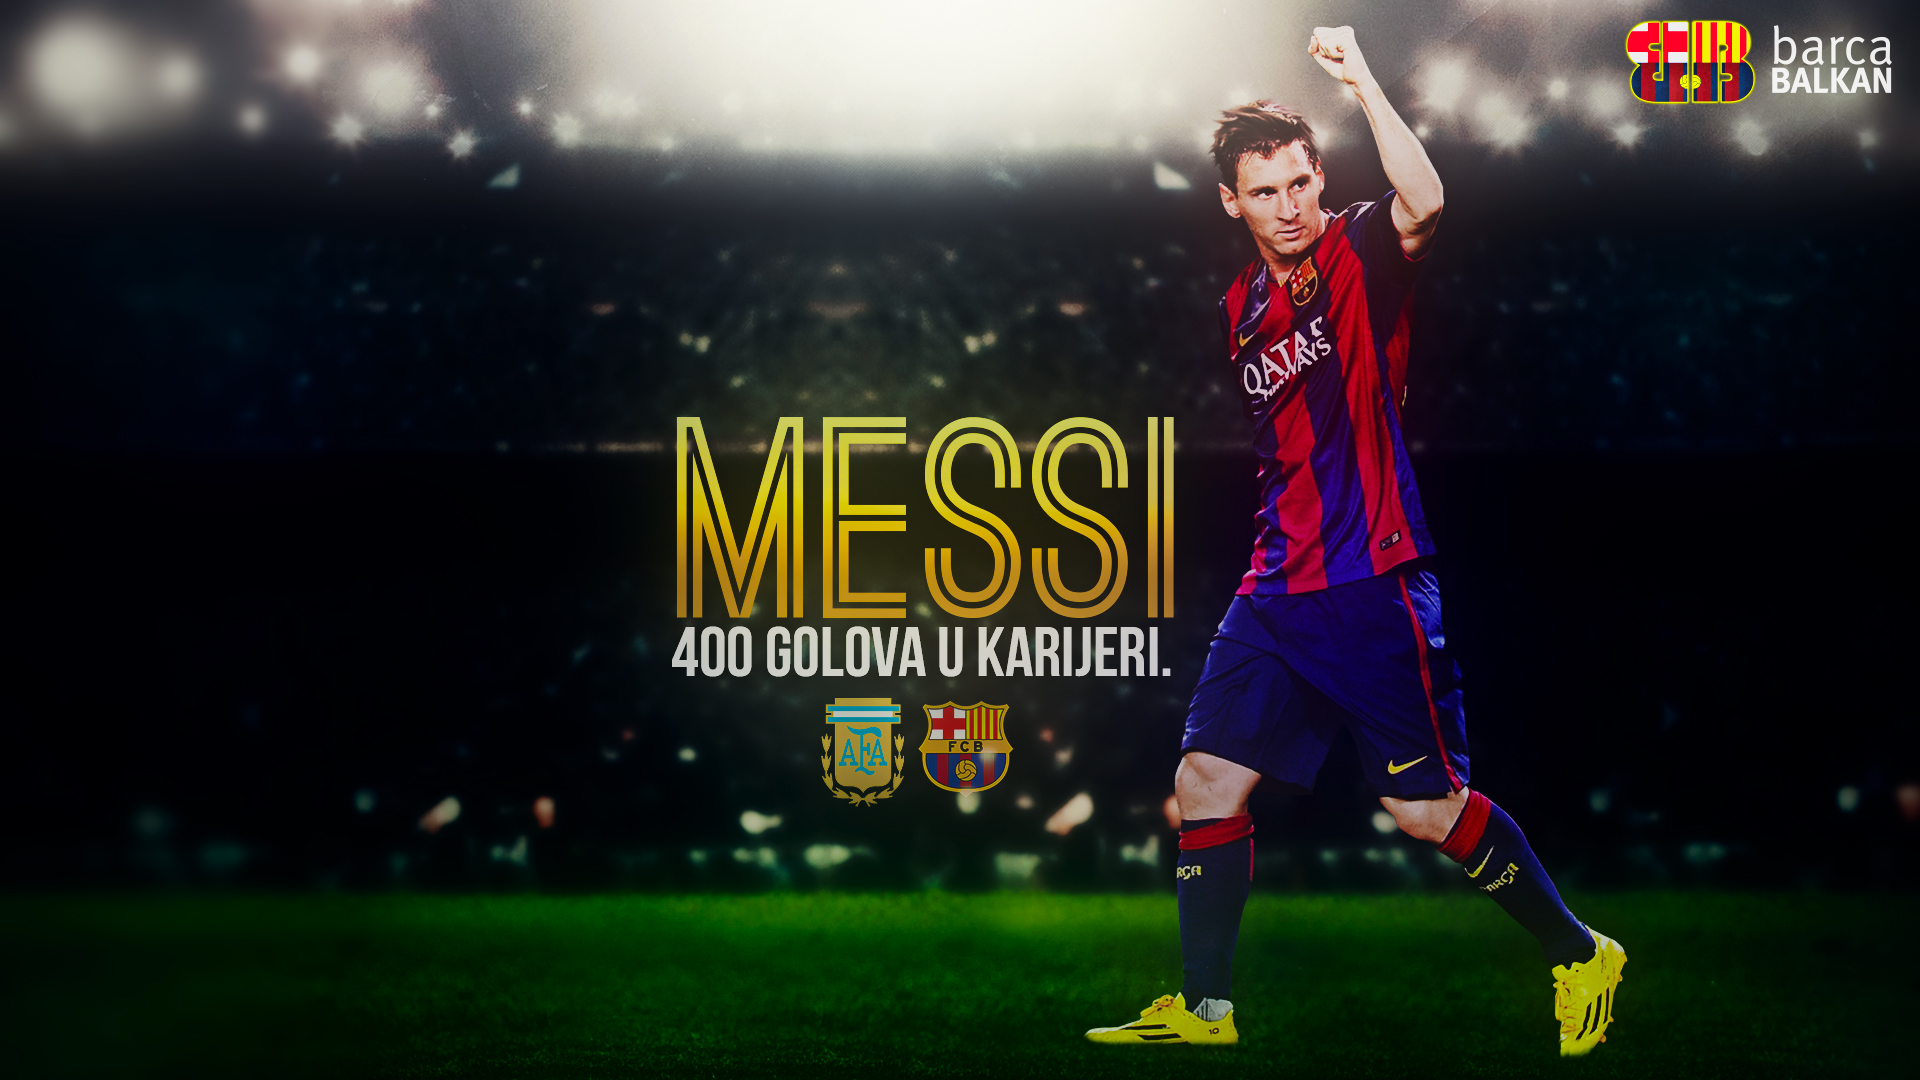 Lionel Messi Wallpapers HD Wallpaper  1920x1080